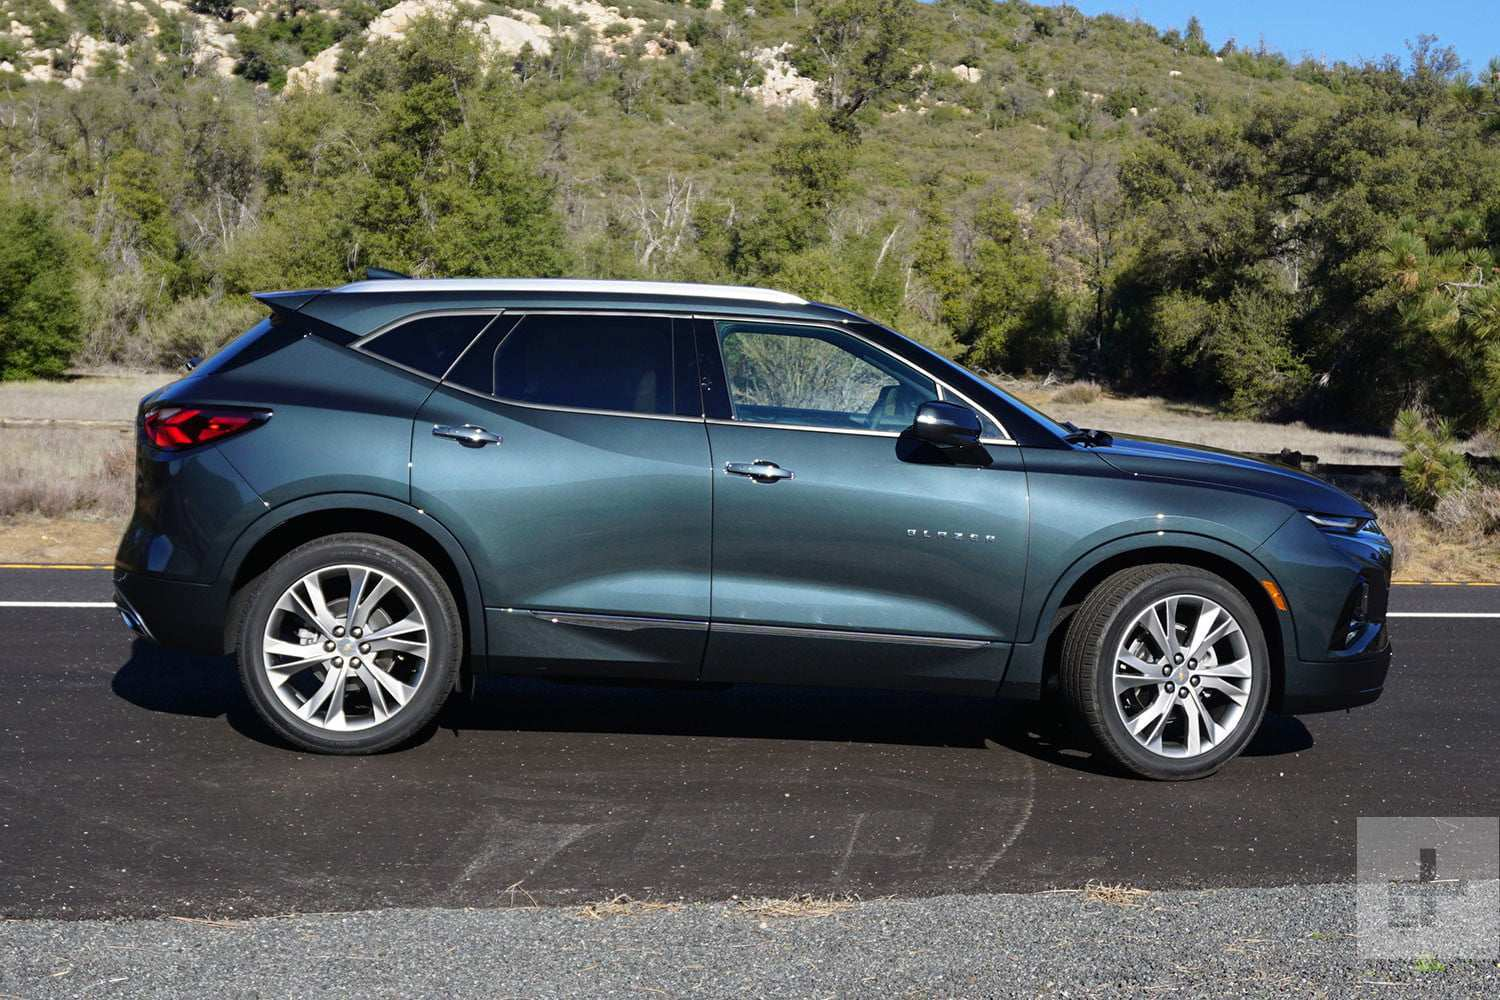 59 A 2019 The Chevy Blazer Images